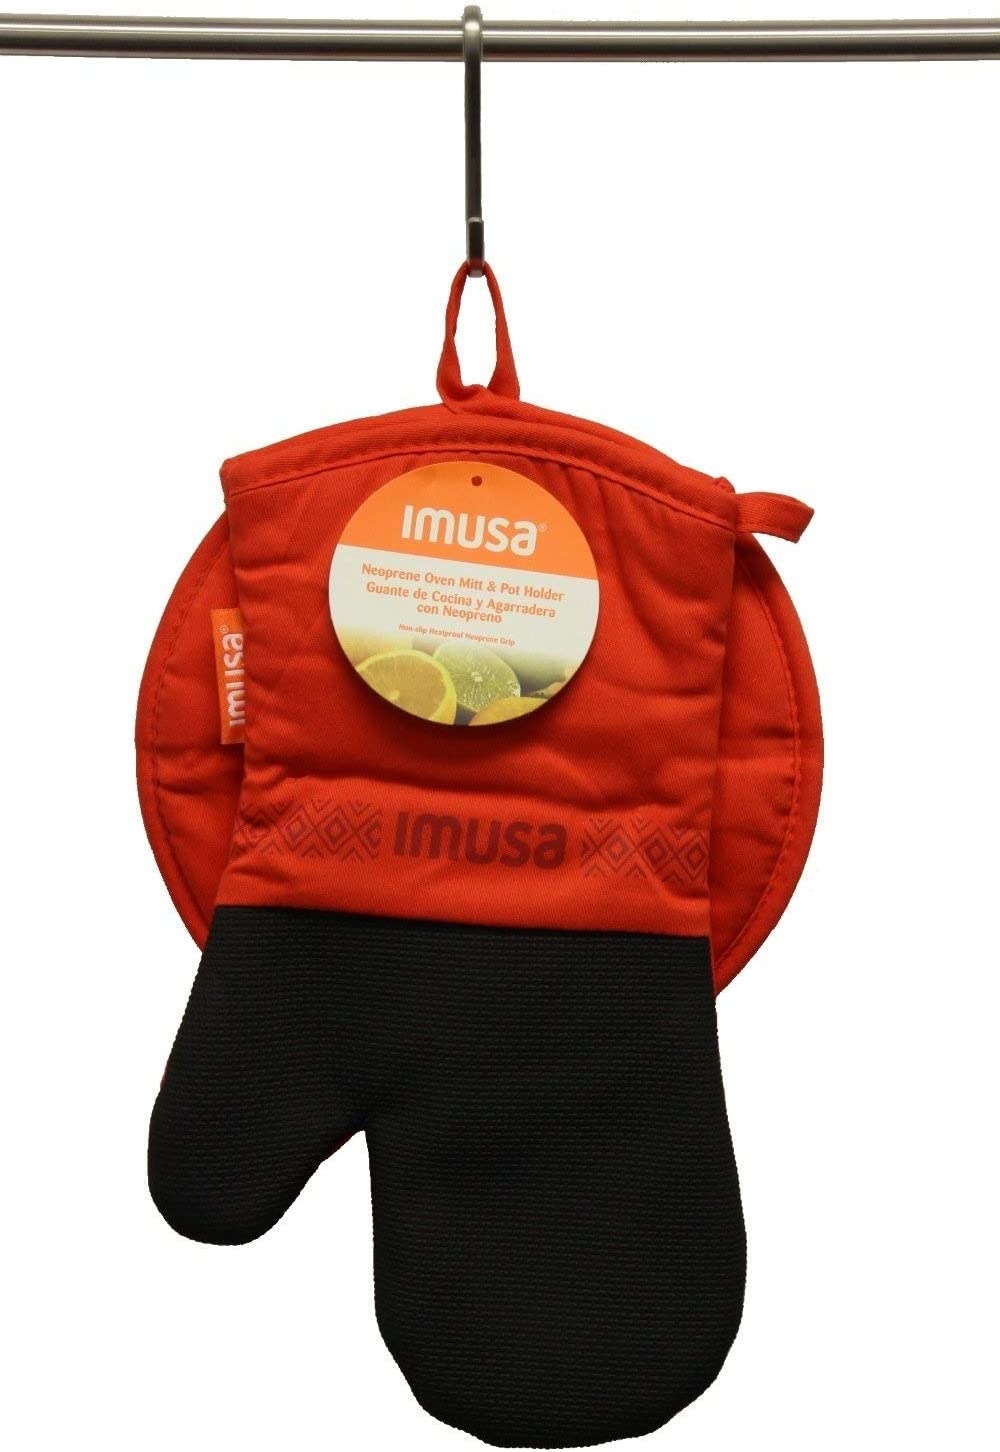 Imusa Oven Mitt & Potholder Set w/Neoprene for Easy Gripping, Heat Resistant up to 500 Degrees, Multiple Colors Available! (Red)